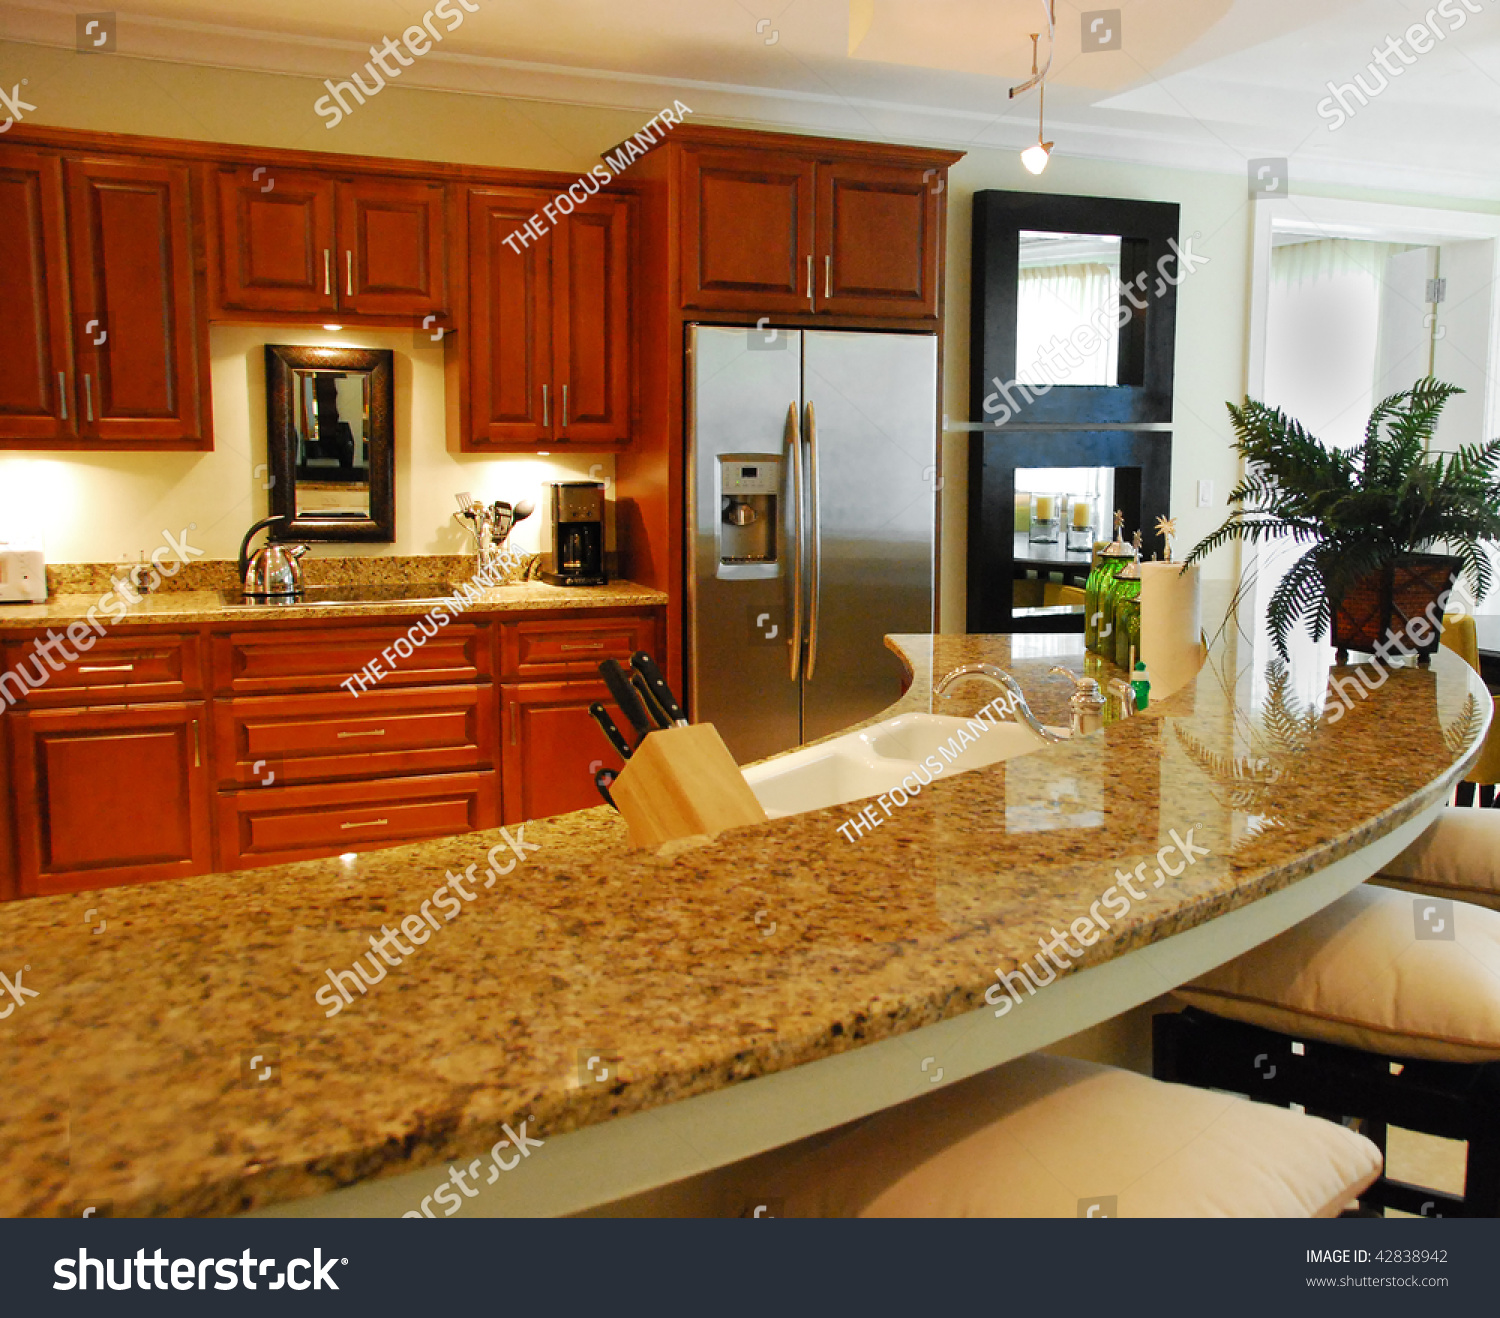 Kitchen Background Image: Granite Kitchen Counter With Cabinets In Background Stock